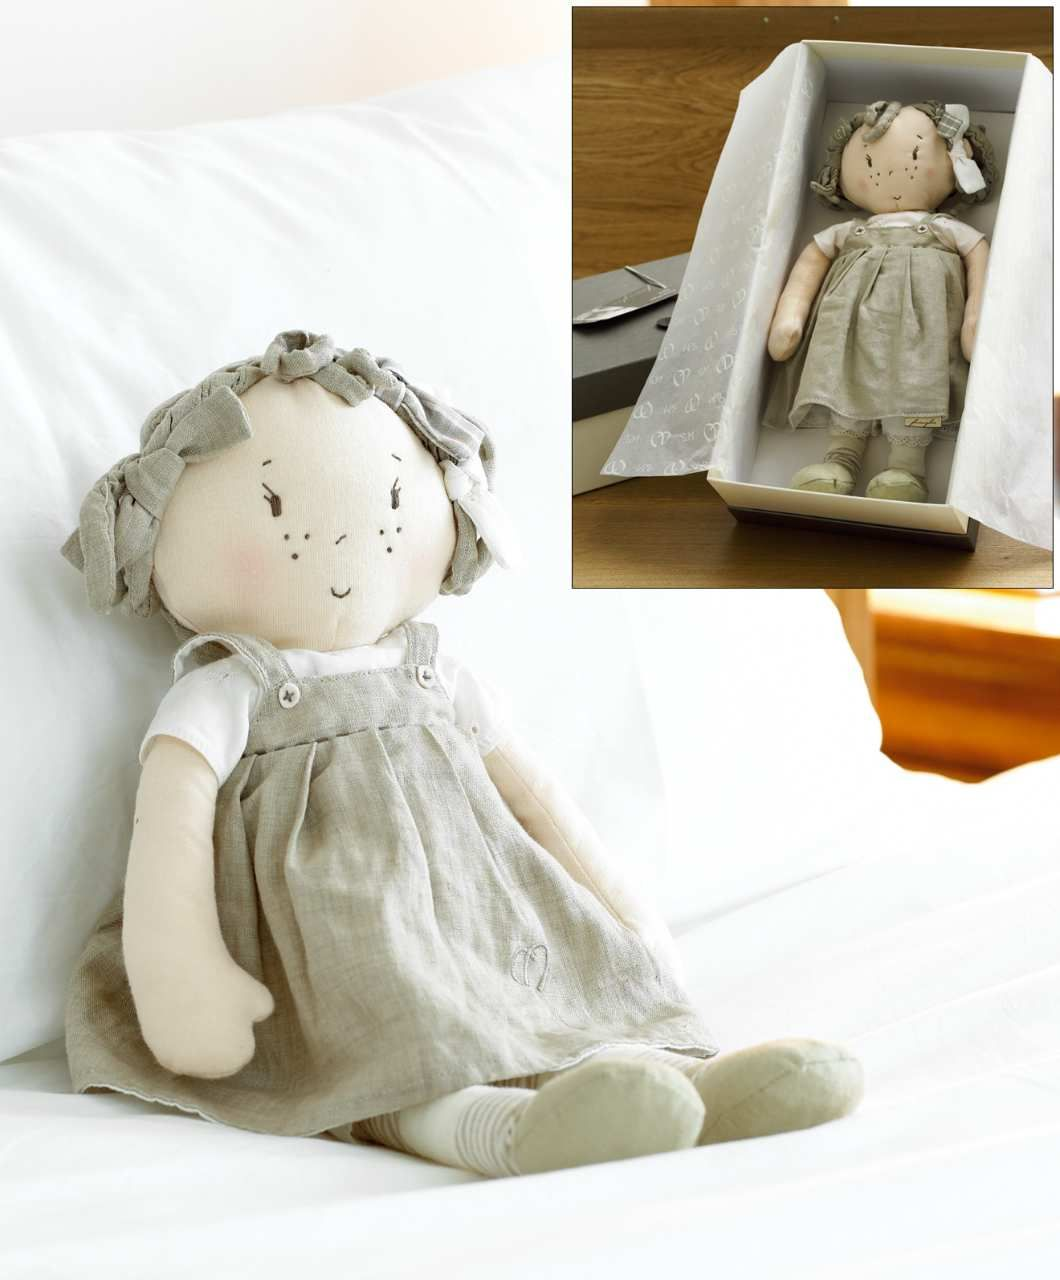 rag doll - wish I could make something like this...will have to find a pattern!